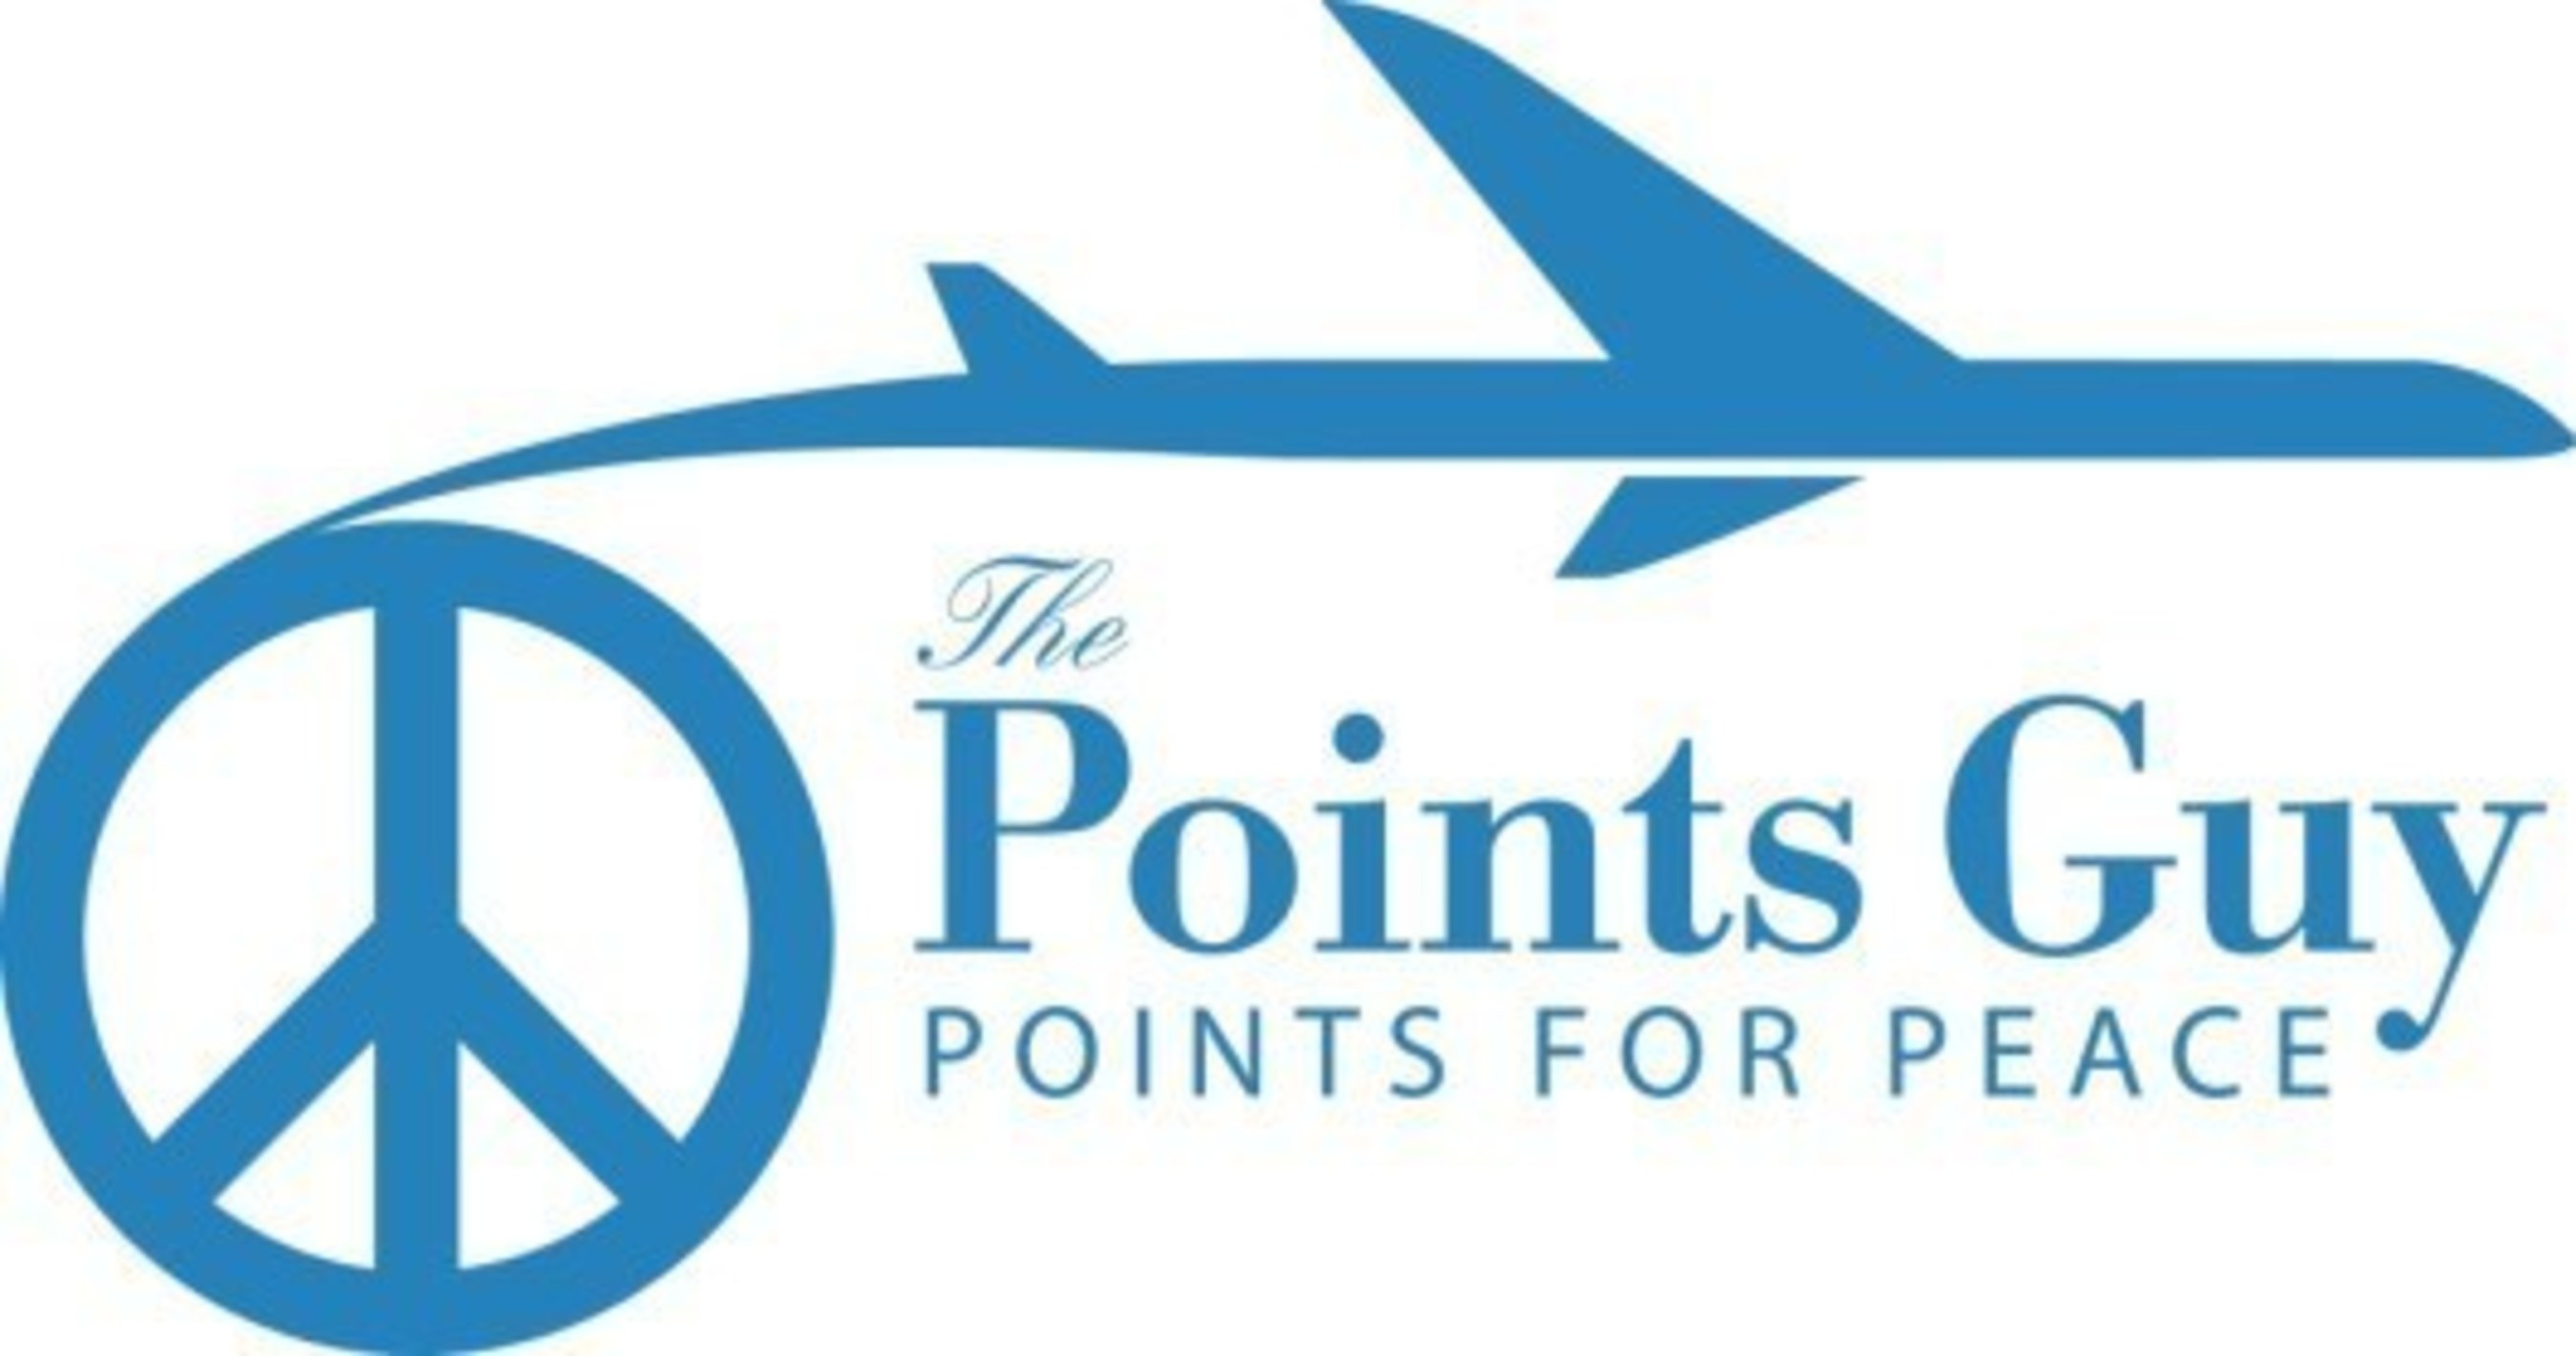 The funds raised in the Points for Peace campaign will help bring Nobel Prize winners and year-round PeaceJam programs to five countries including Ghana, Guatemala, South Africa, East Timor and India, in turn impacting the lives of thousands of youth and their communities.